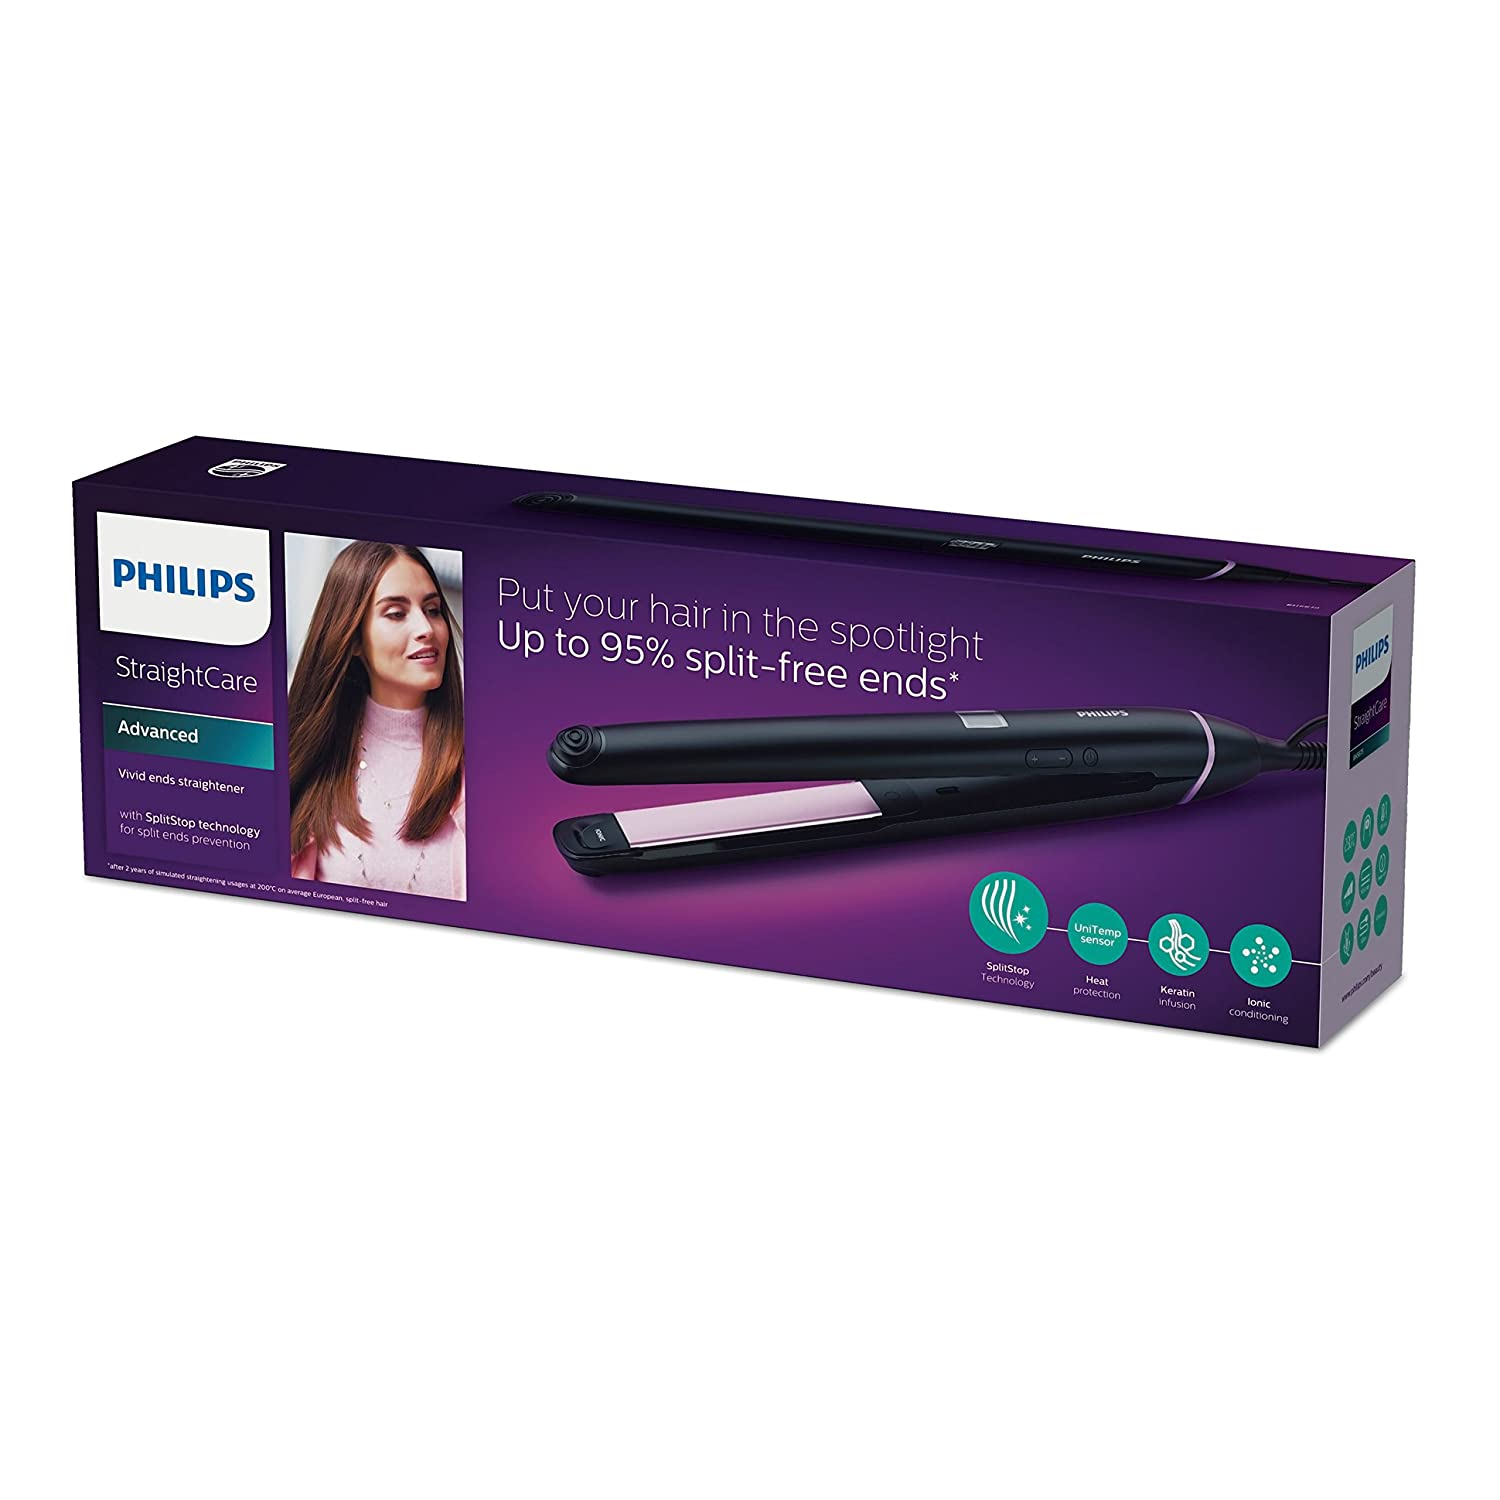 Philips StraightCare Vivid Ends straightener BHS675/00 BHS675 with SplitStop Technology Keratin infusion 110V-220V enlarge